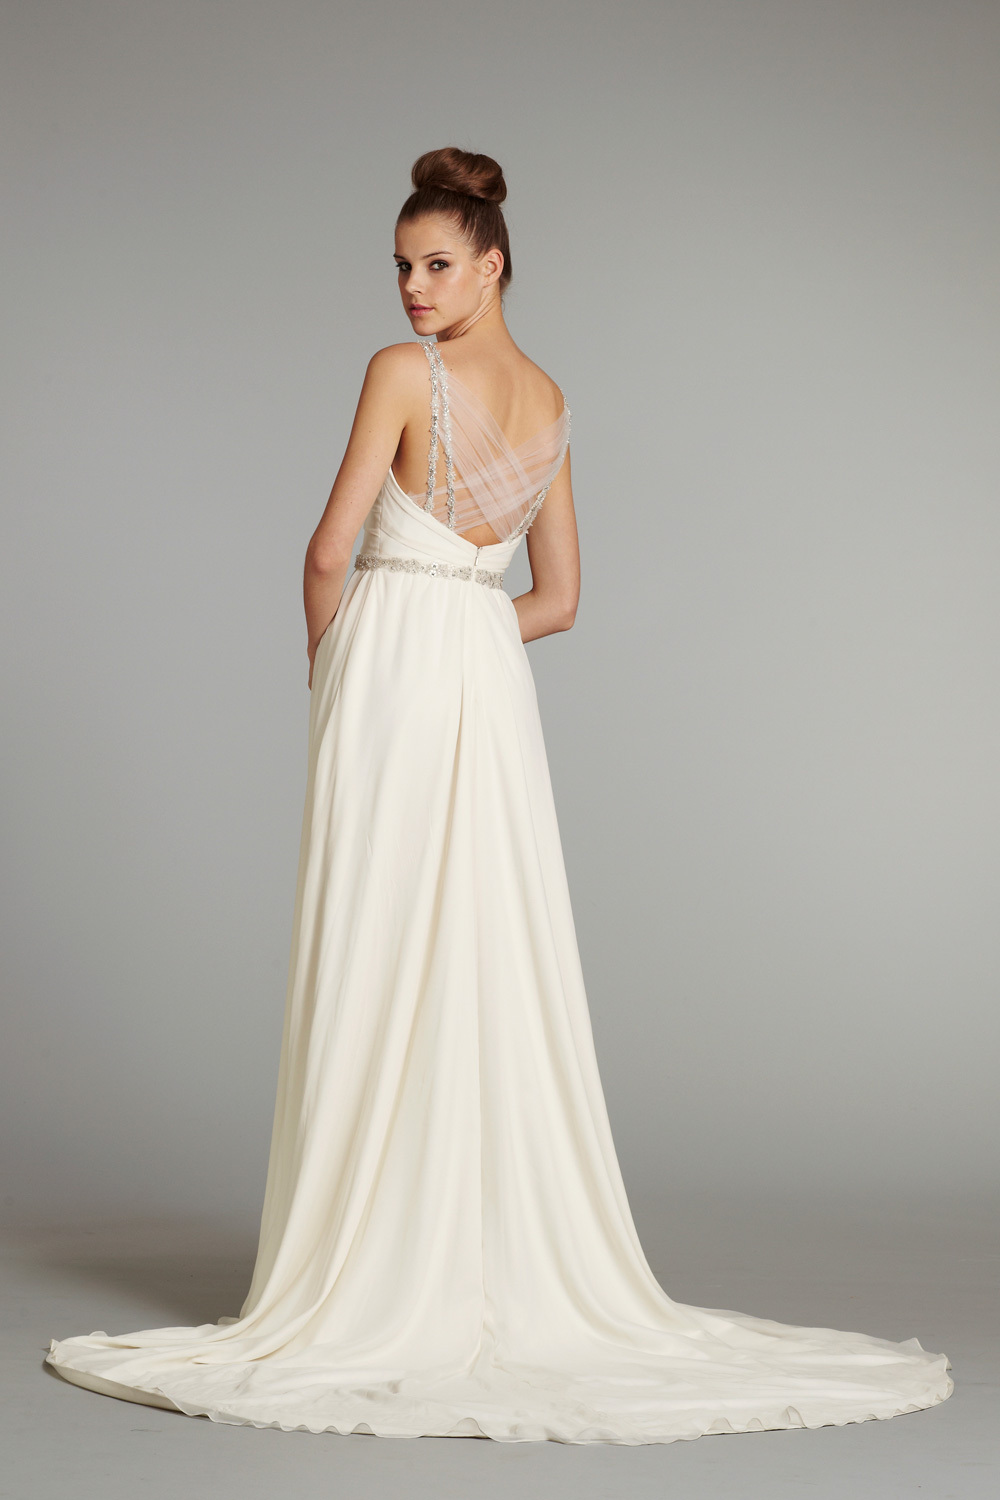 new bridal gowns fall 2012 wedding dress hayley paige for jlm couture nina. Black Bedroom Furniture Sets. Home Design Ideas